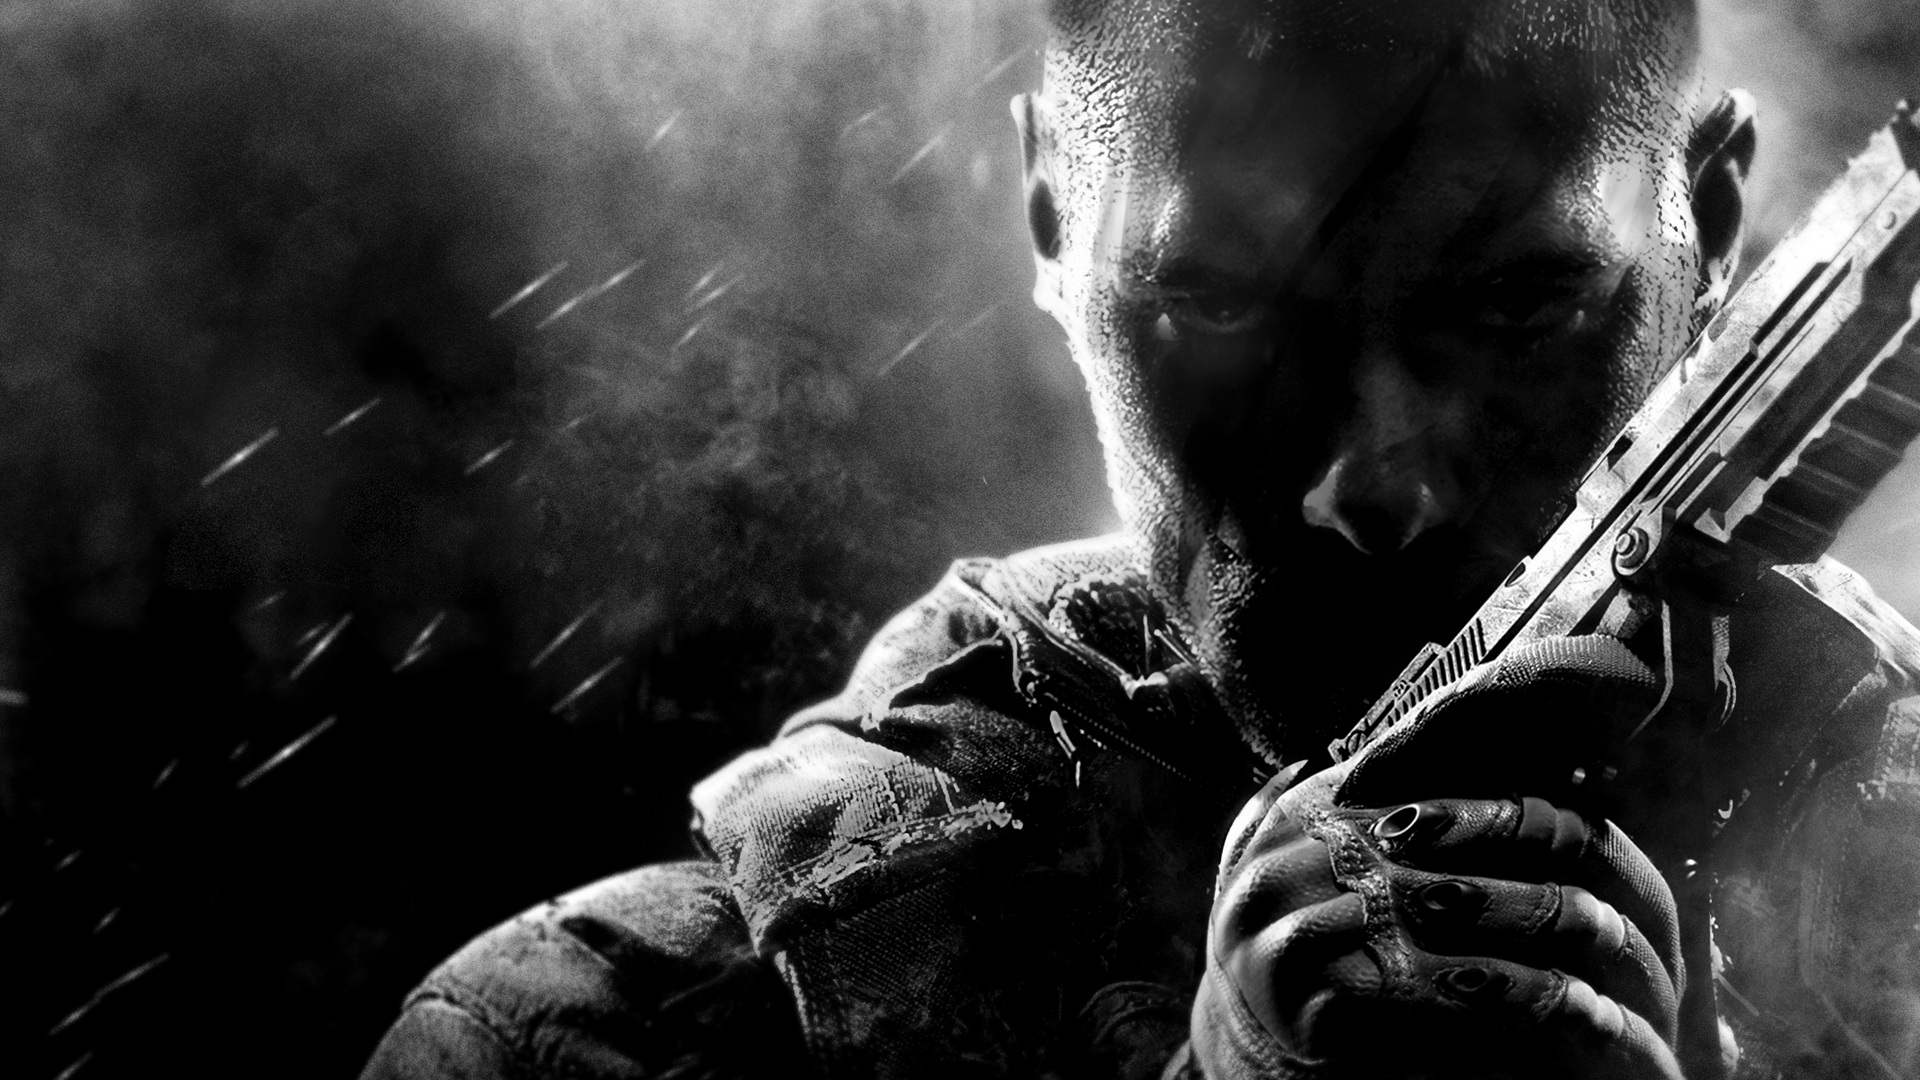 Call of Duty Black Ops 2 wallpaper 13